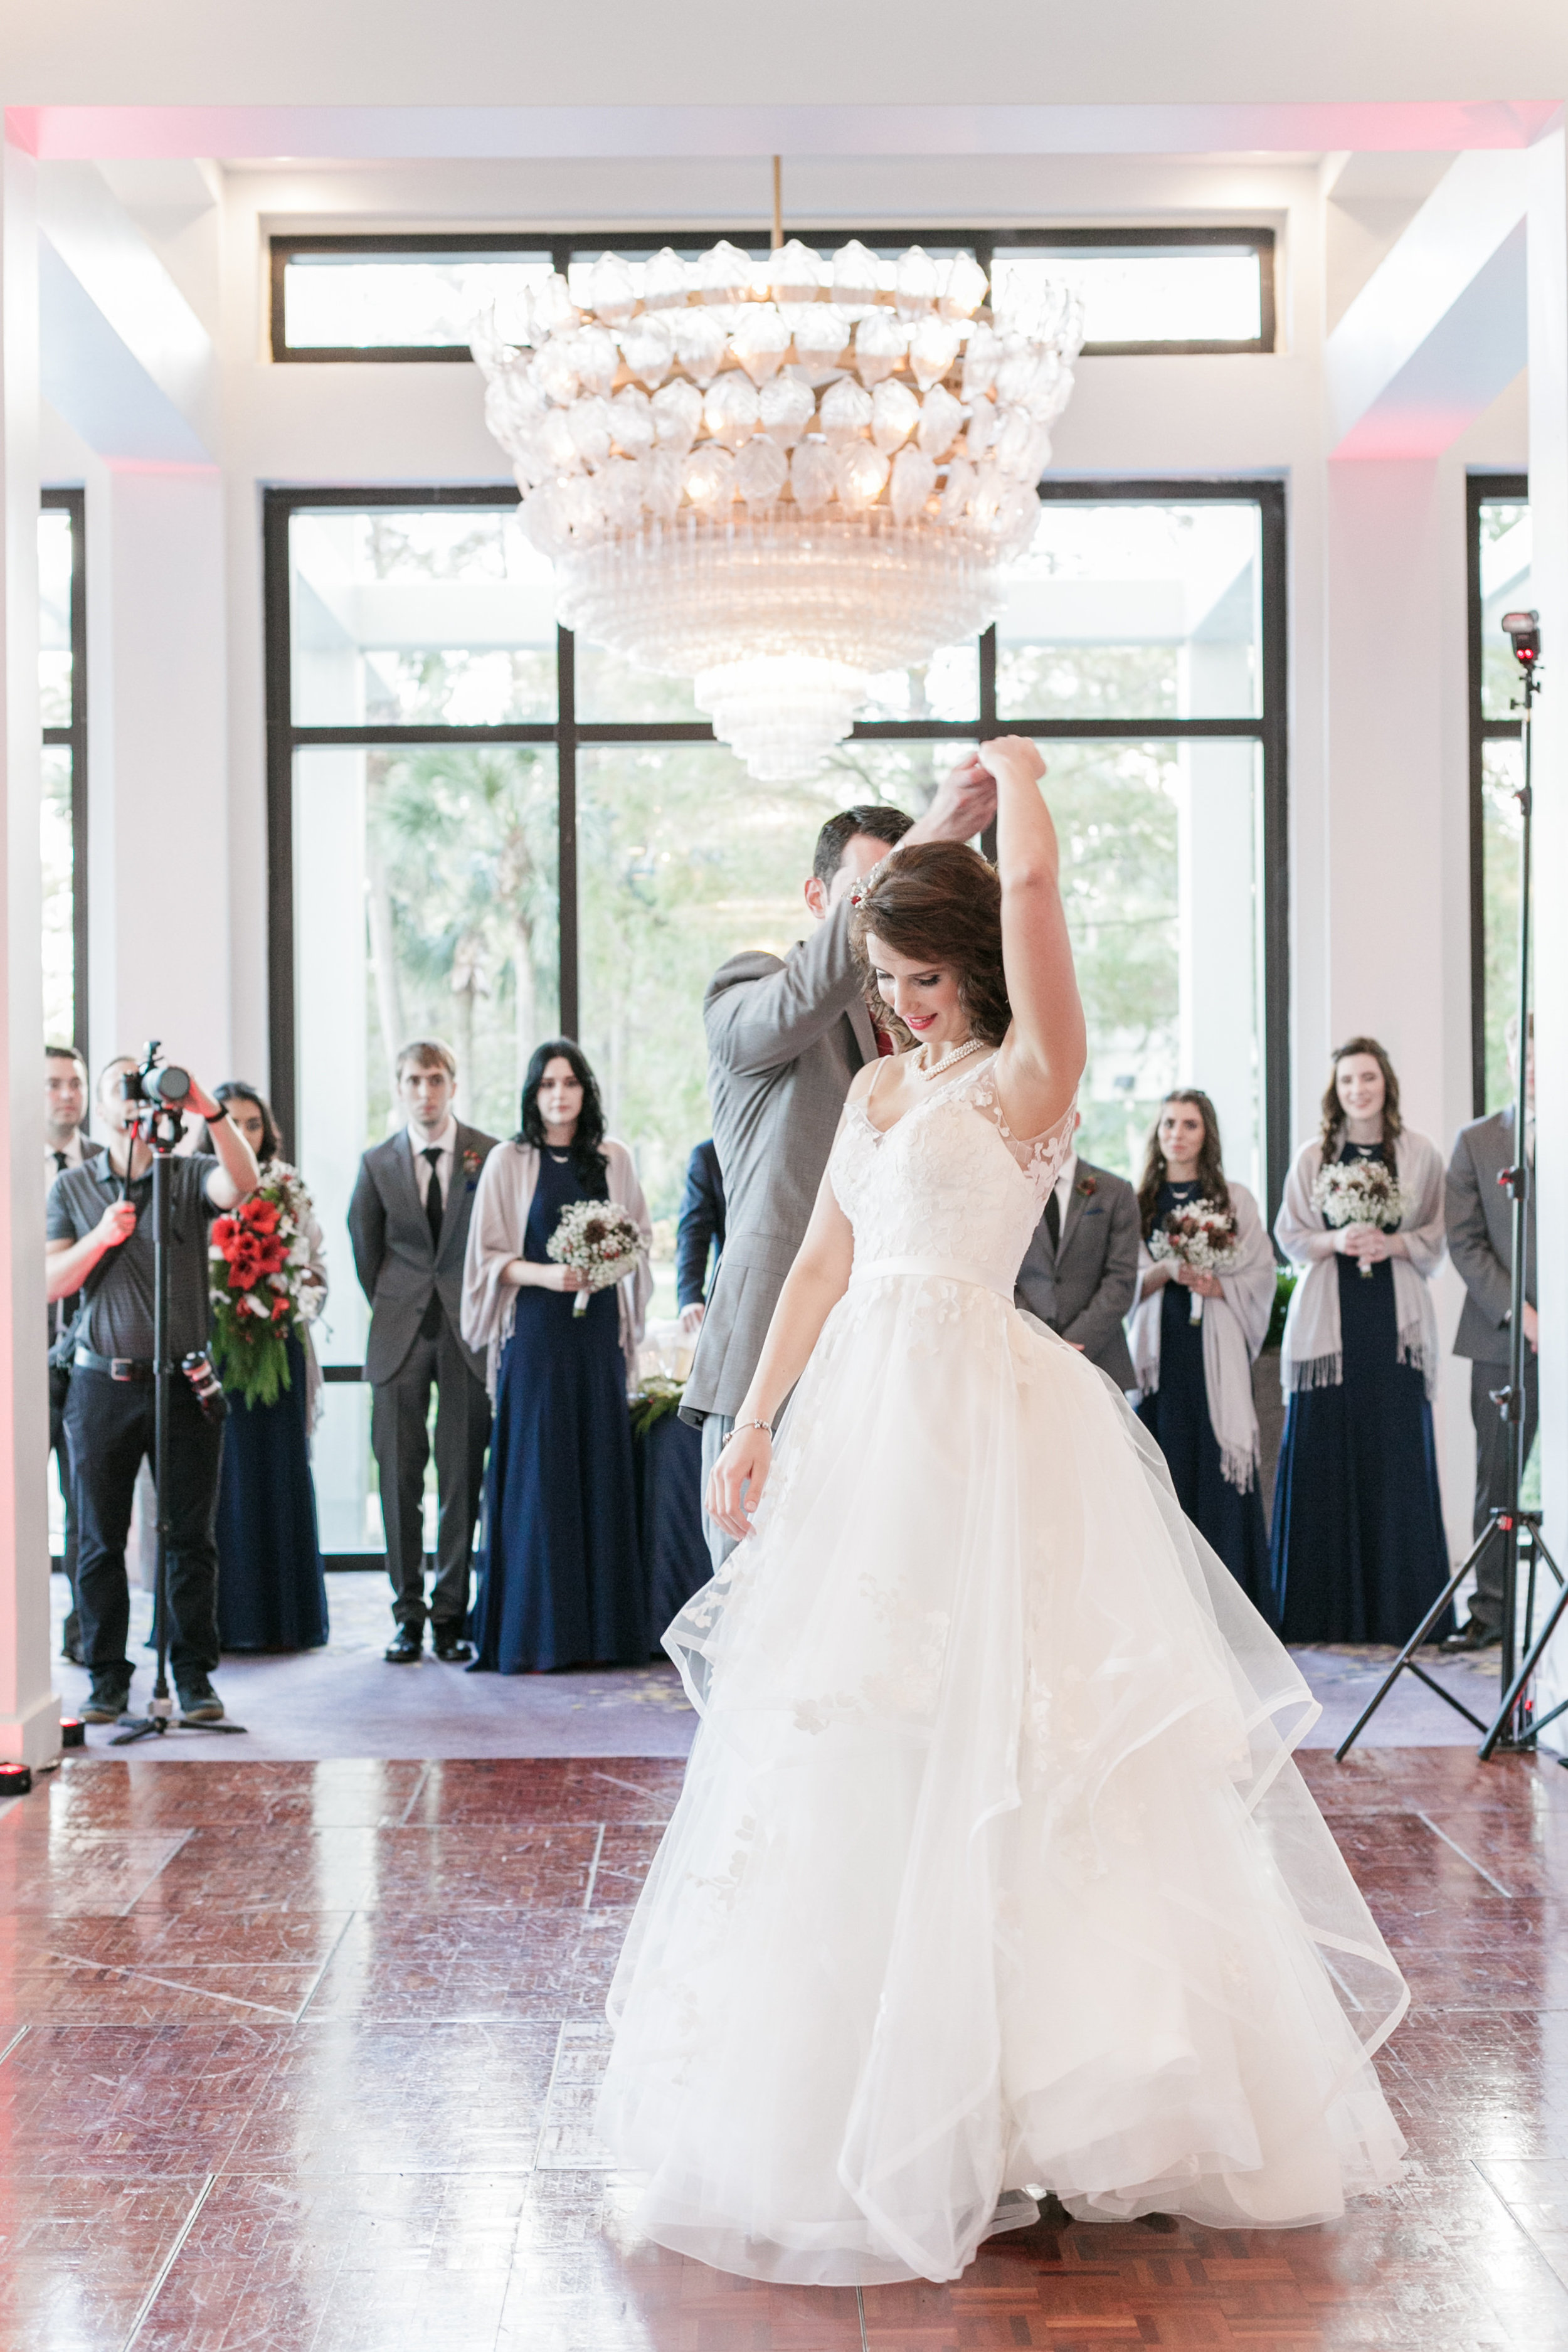 Bluegrass Chic - Bumby Photography - First Dance